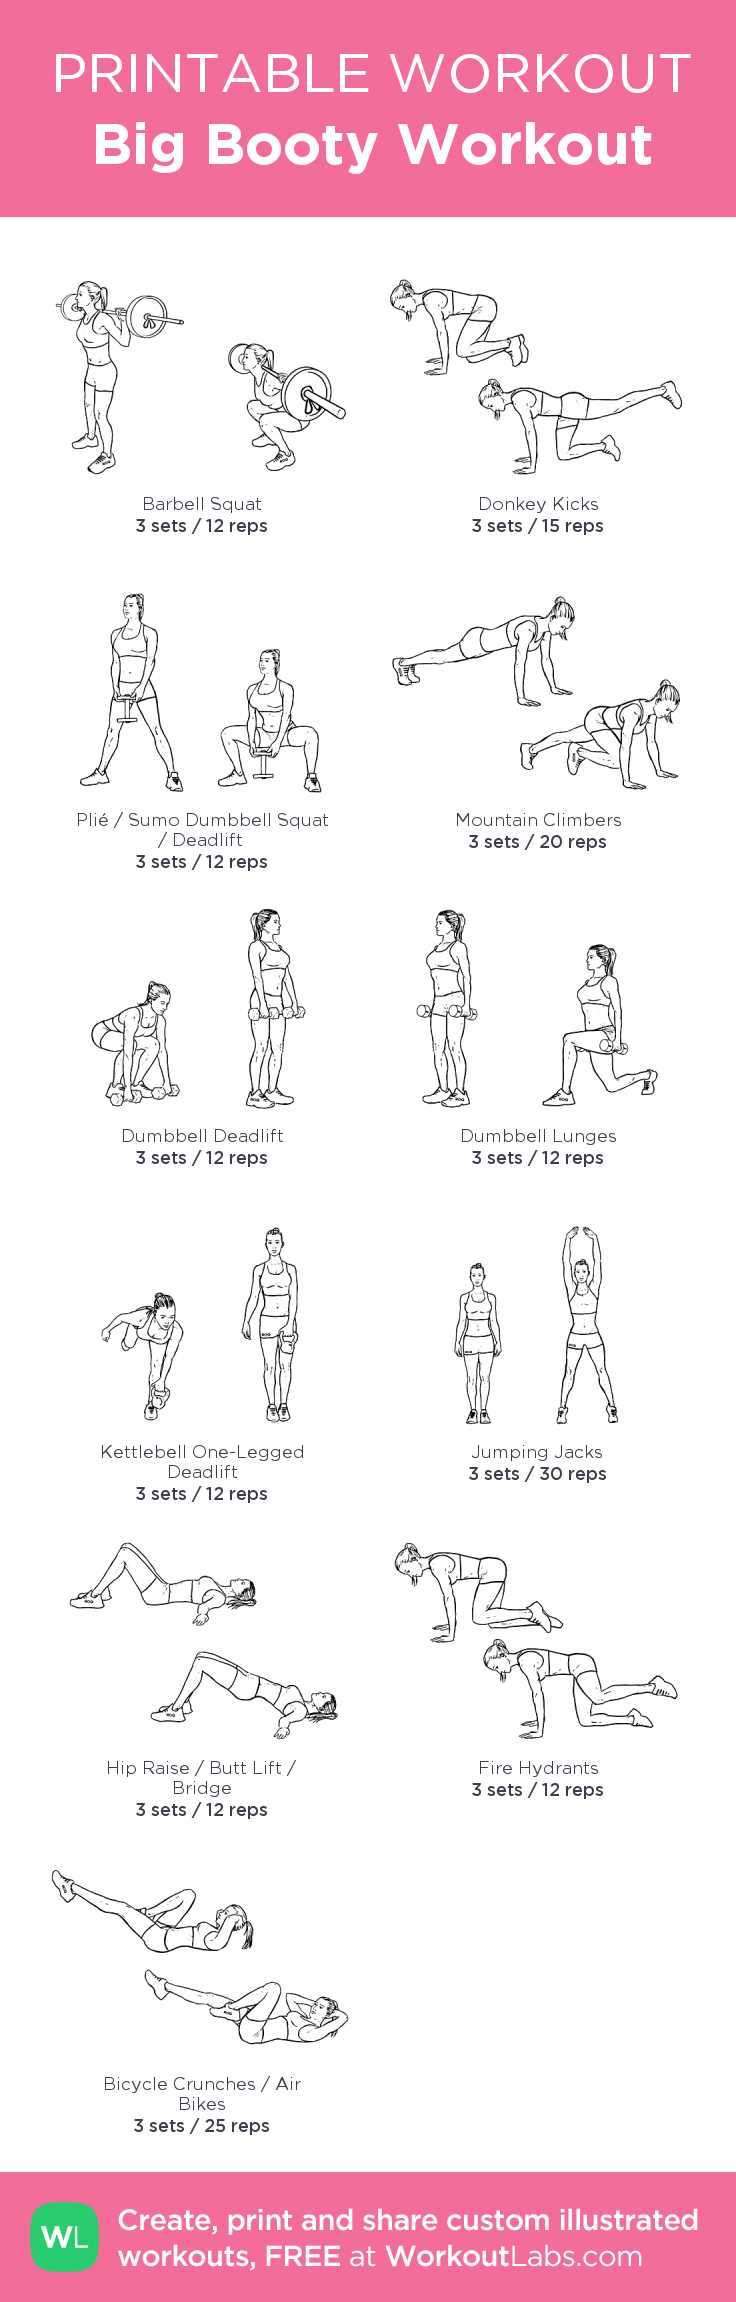 Big Booty Workout: my custom printable workout by